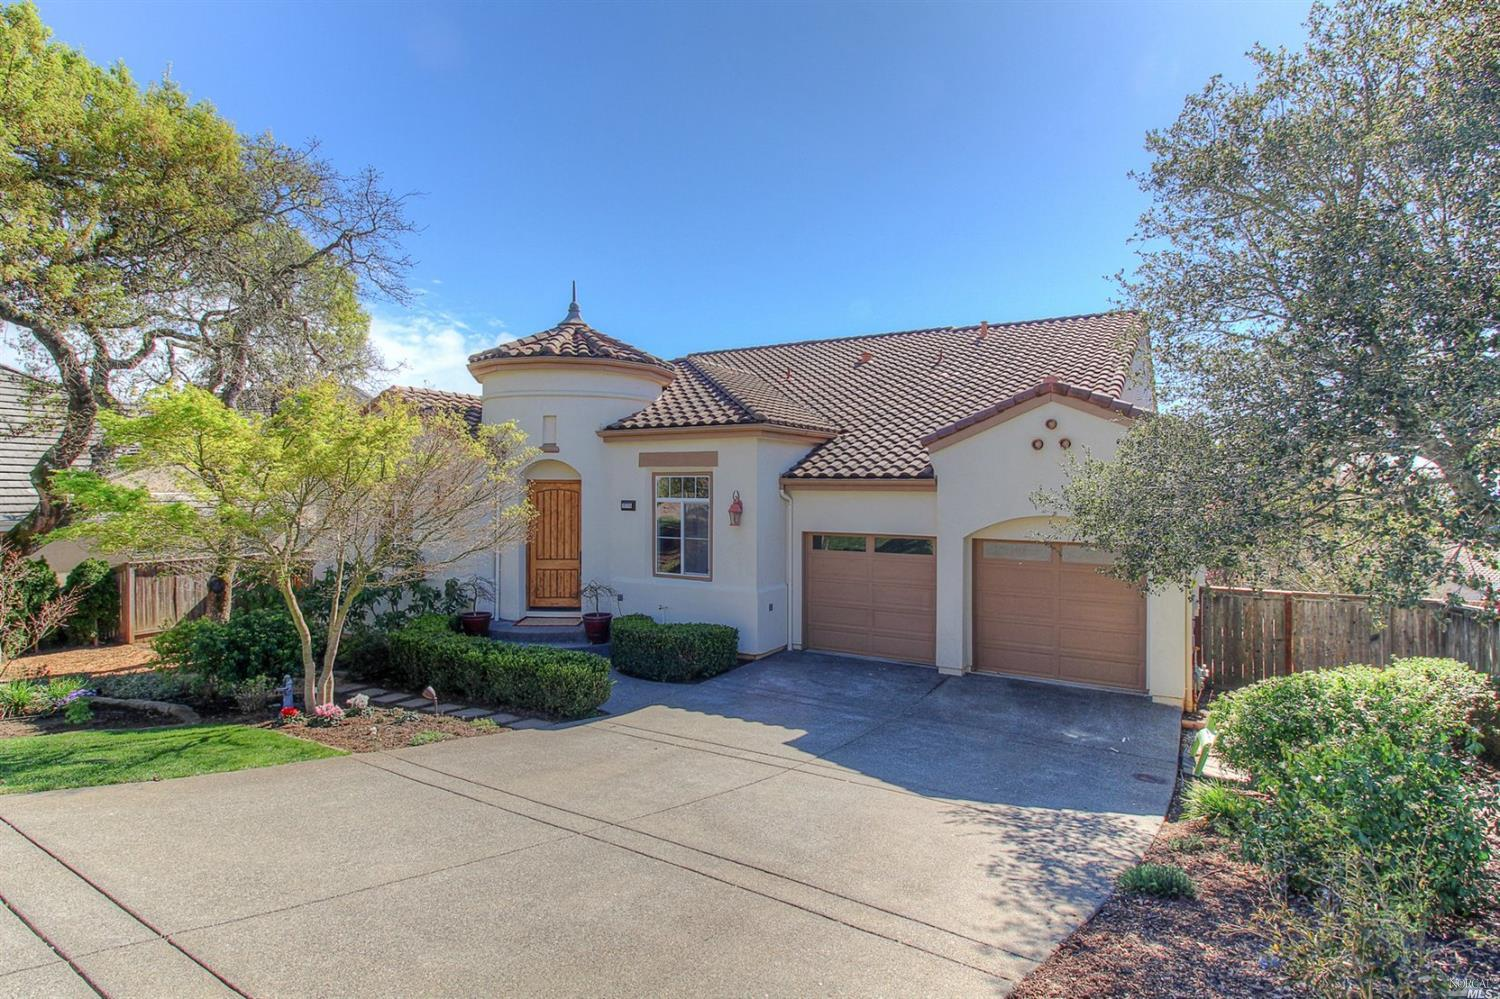 Additional photo for property listing at 3775 Crown Hill Drive  SANTA ROSA, CALIFORNIA 95404